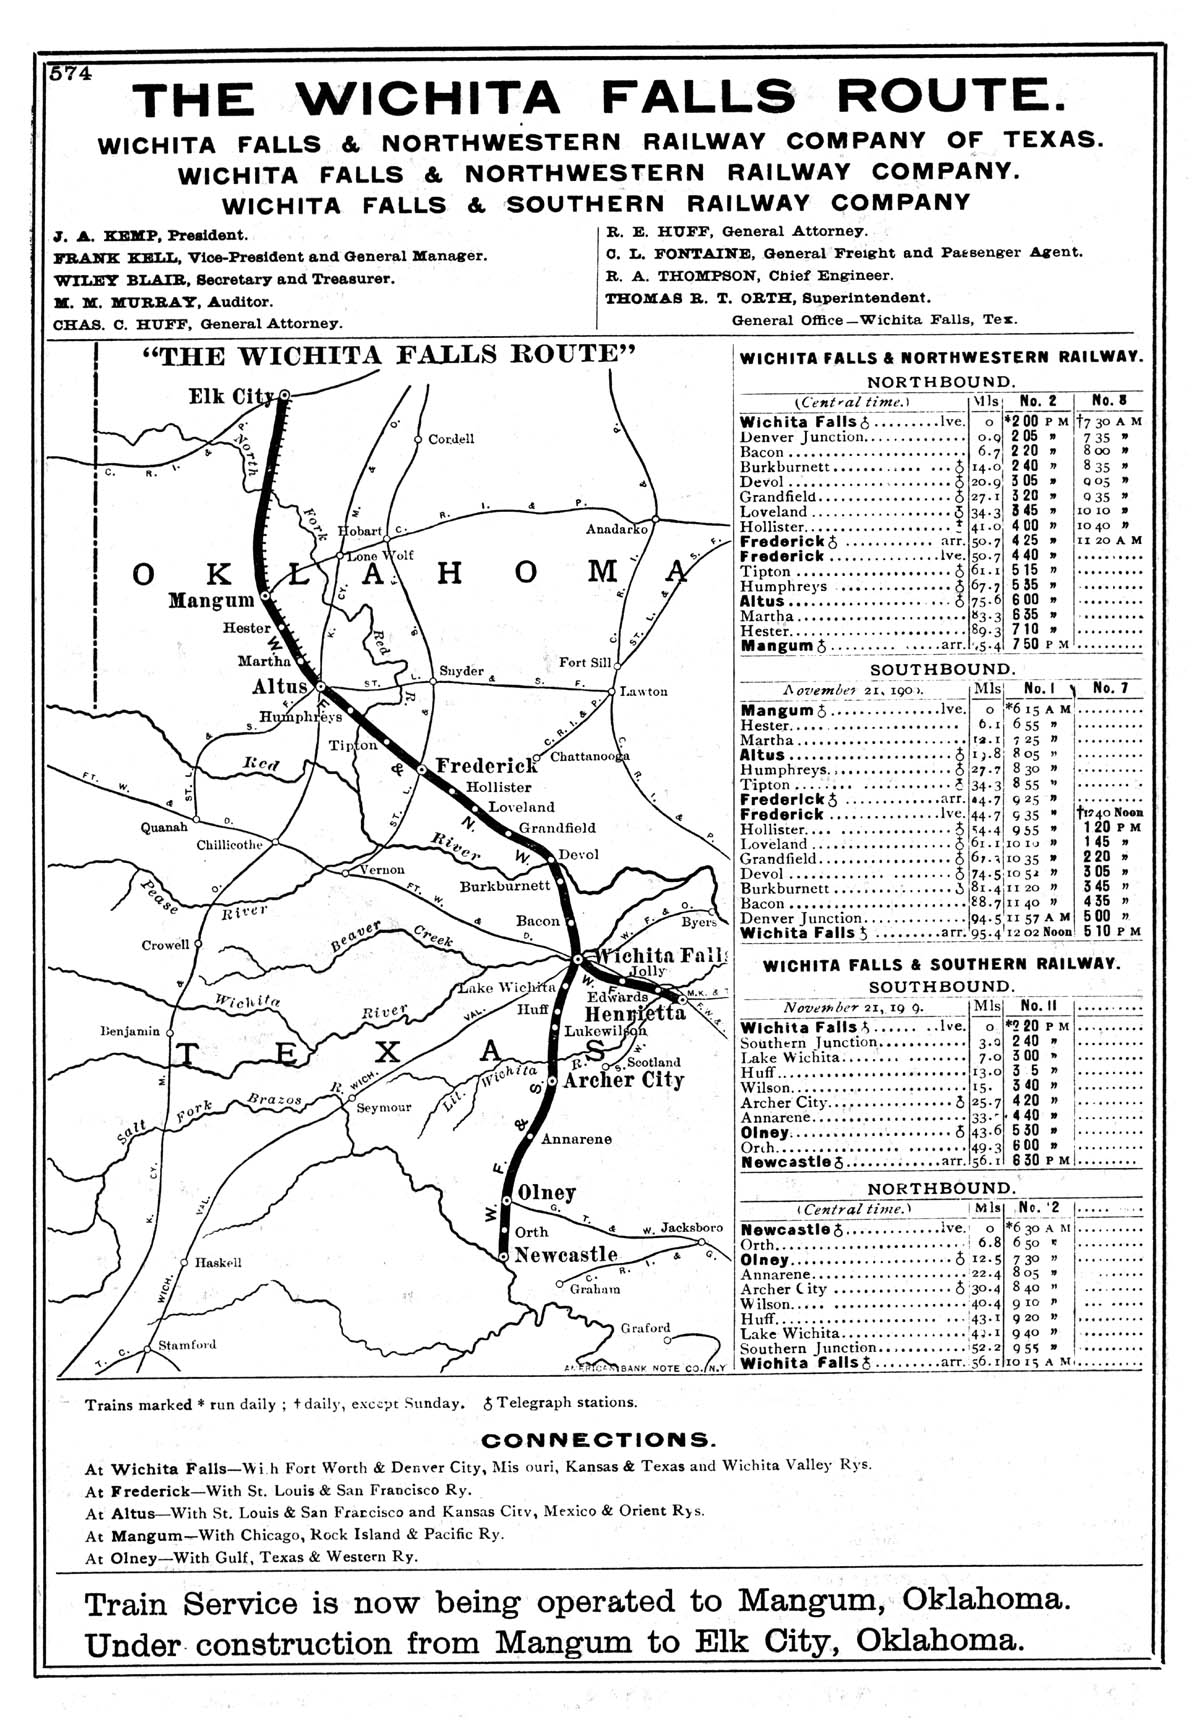 Falls Northwestern Railway Company Tex Map Showing Route in 1910